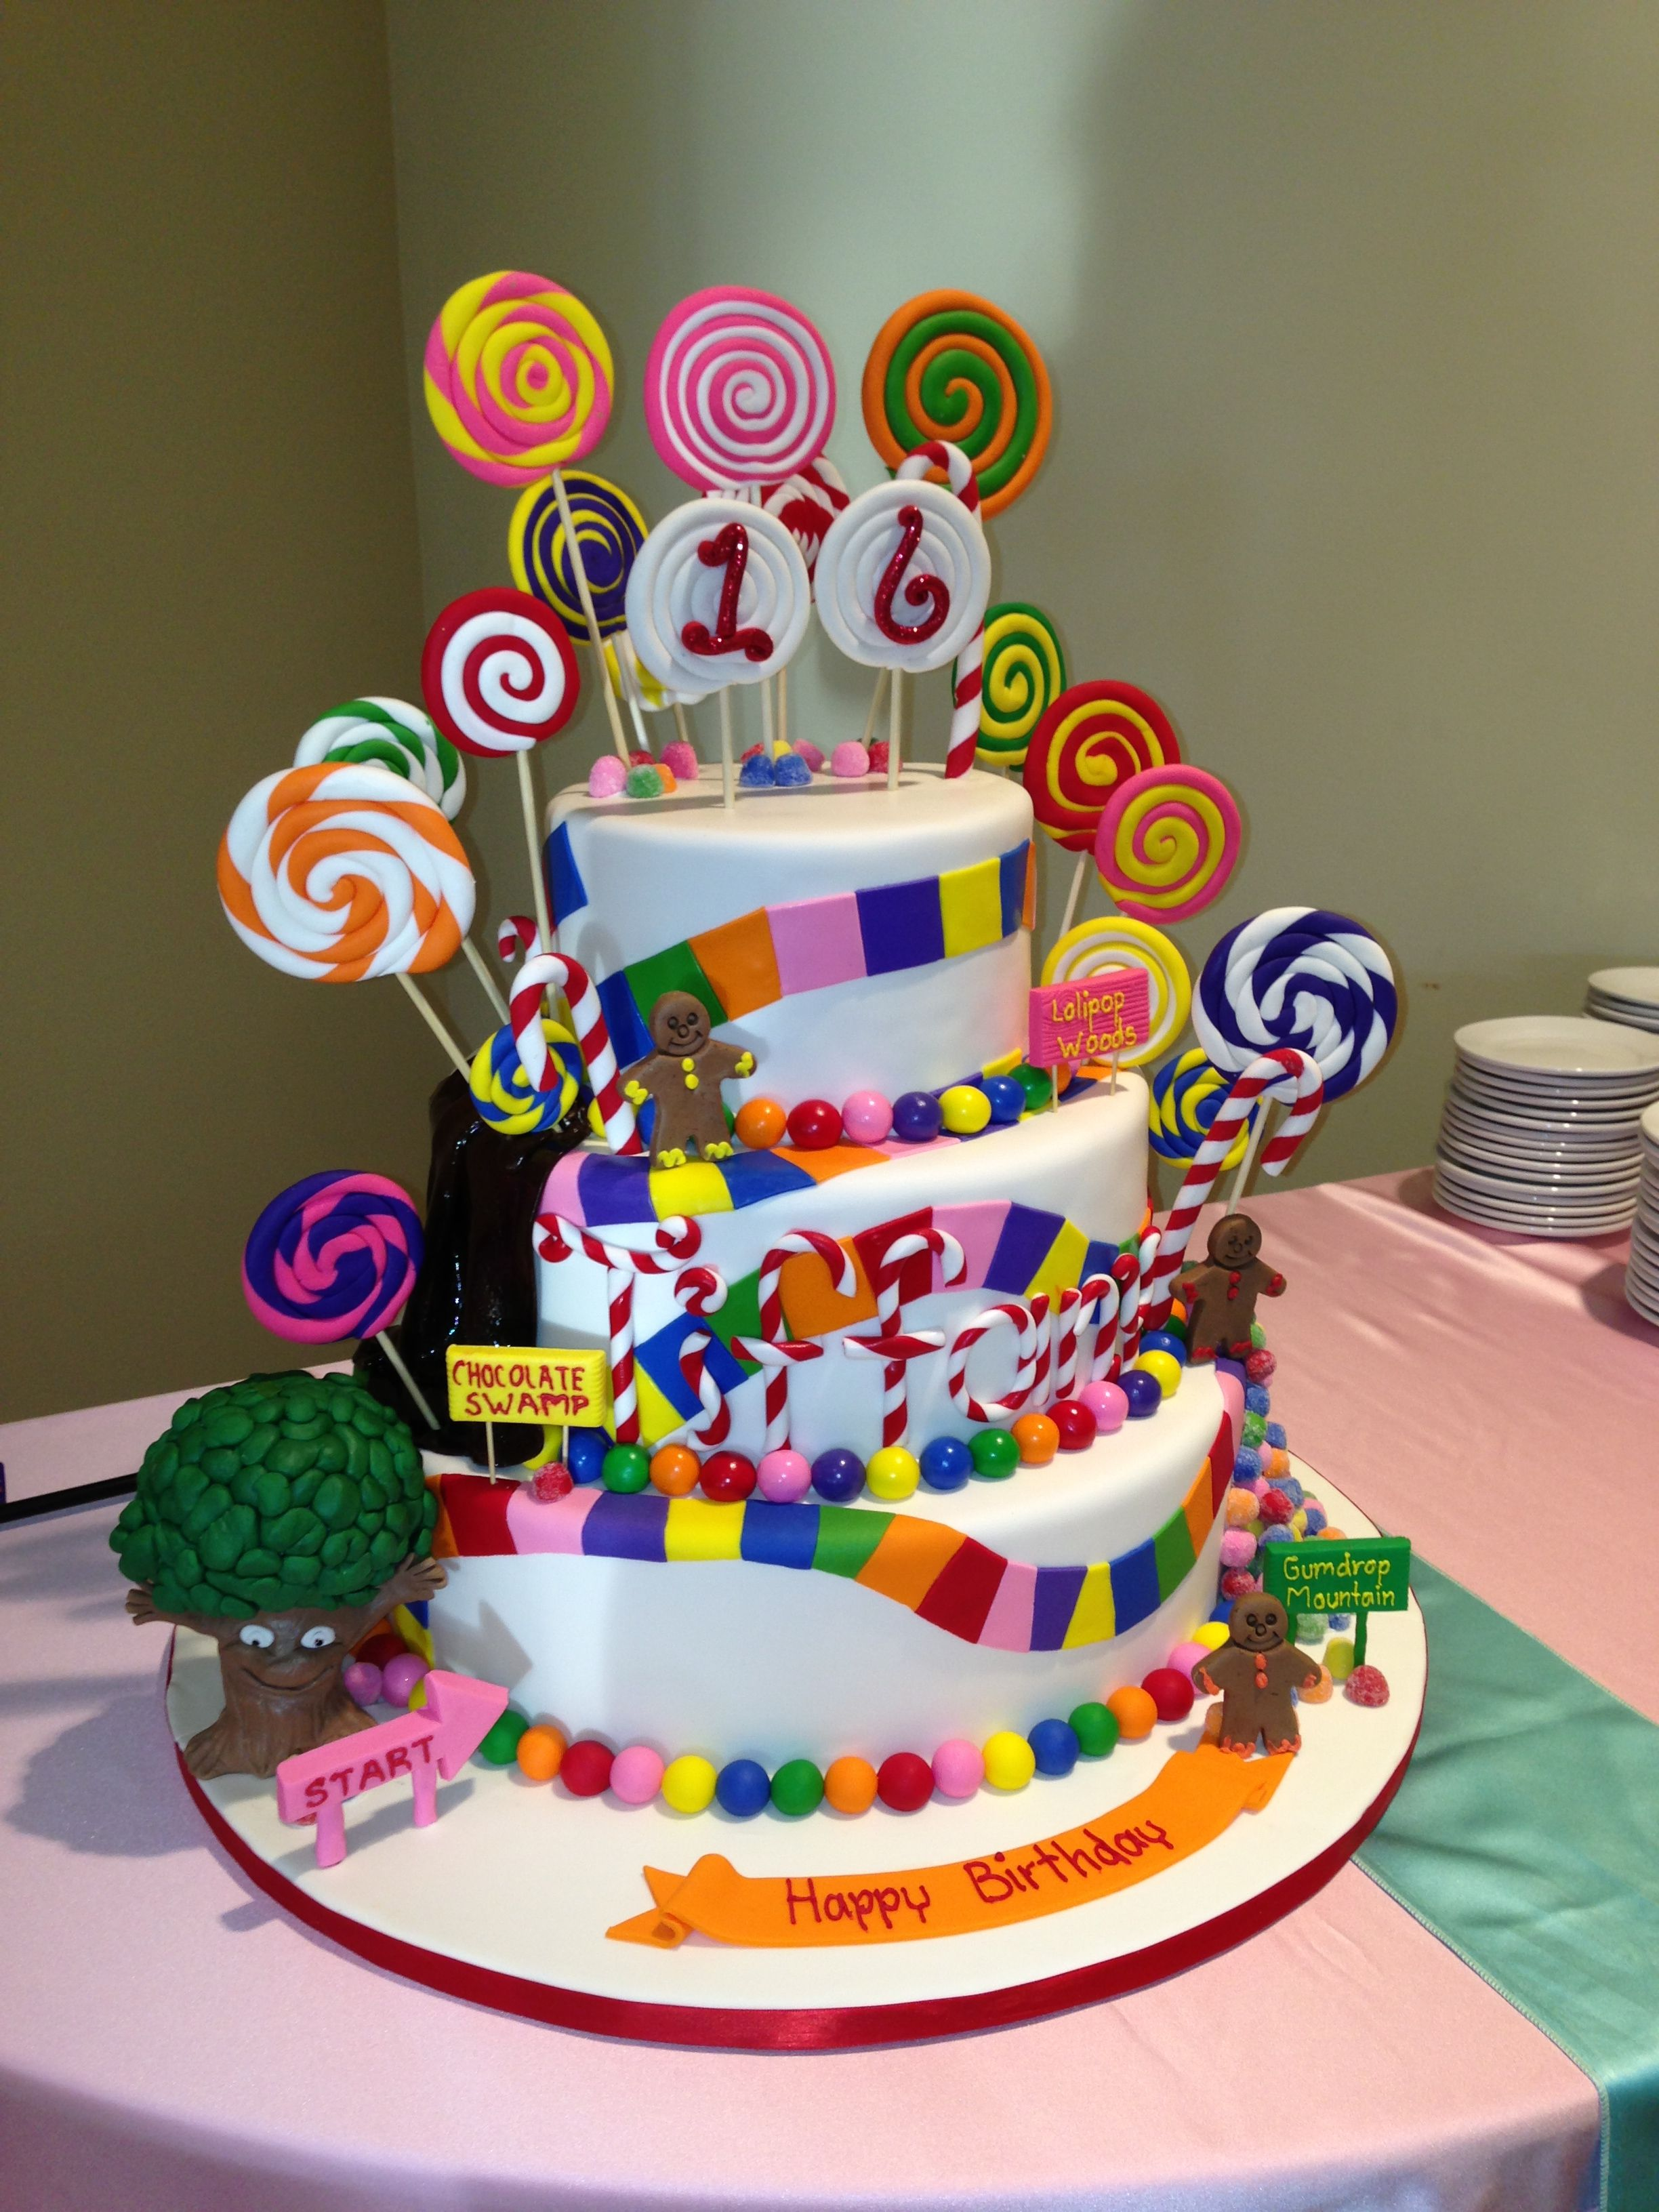 Marvelous Sweet 16 Cake From Cakes By Gina In Houston Candyland Cake Personalised Birthday Cards Paralily Jamesorg